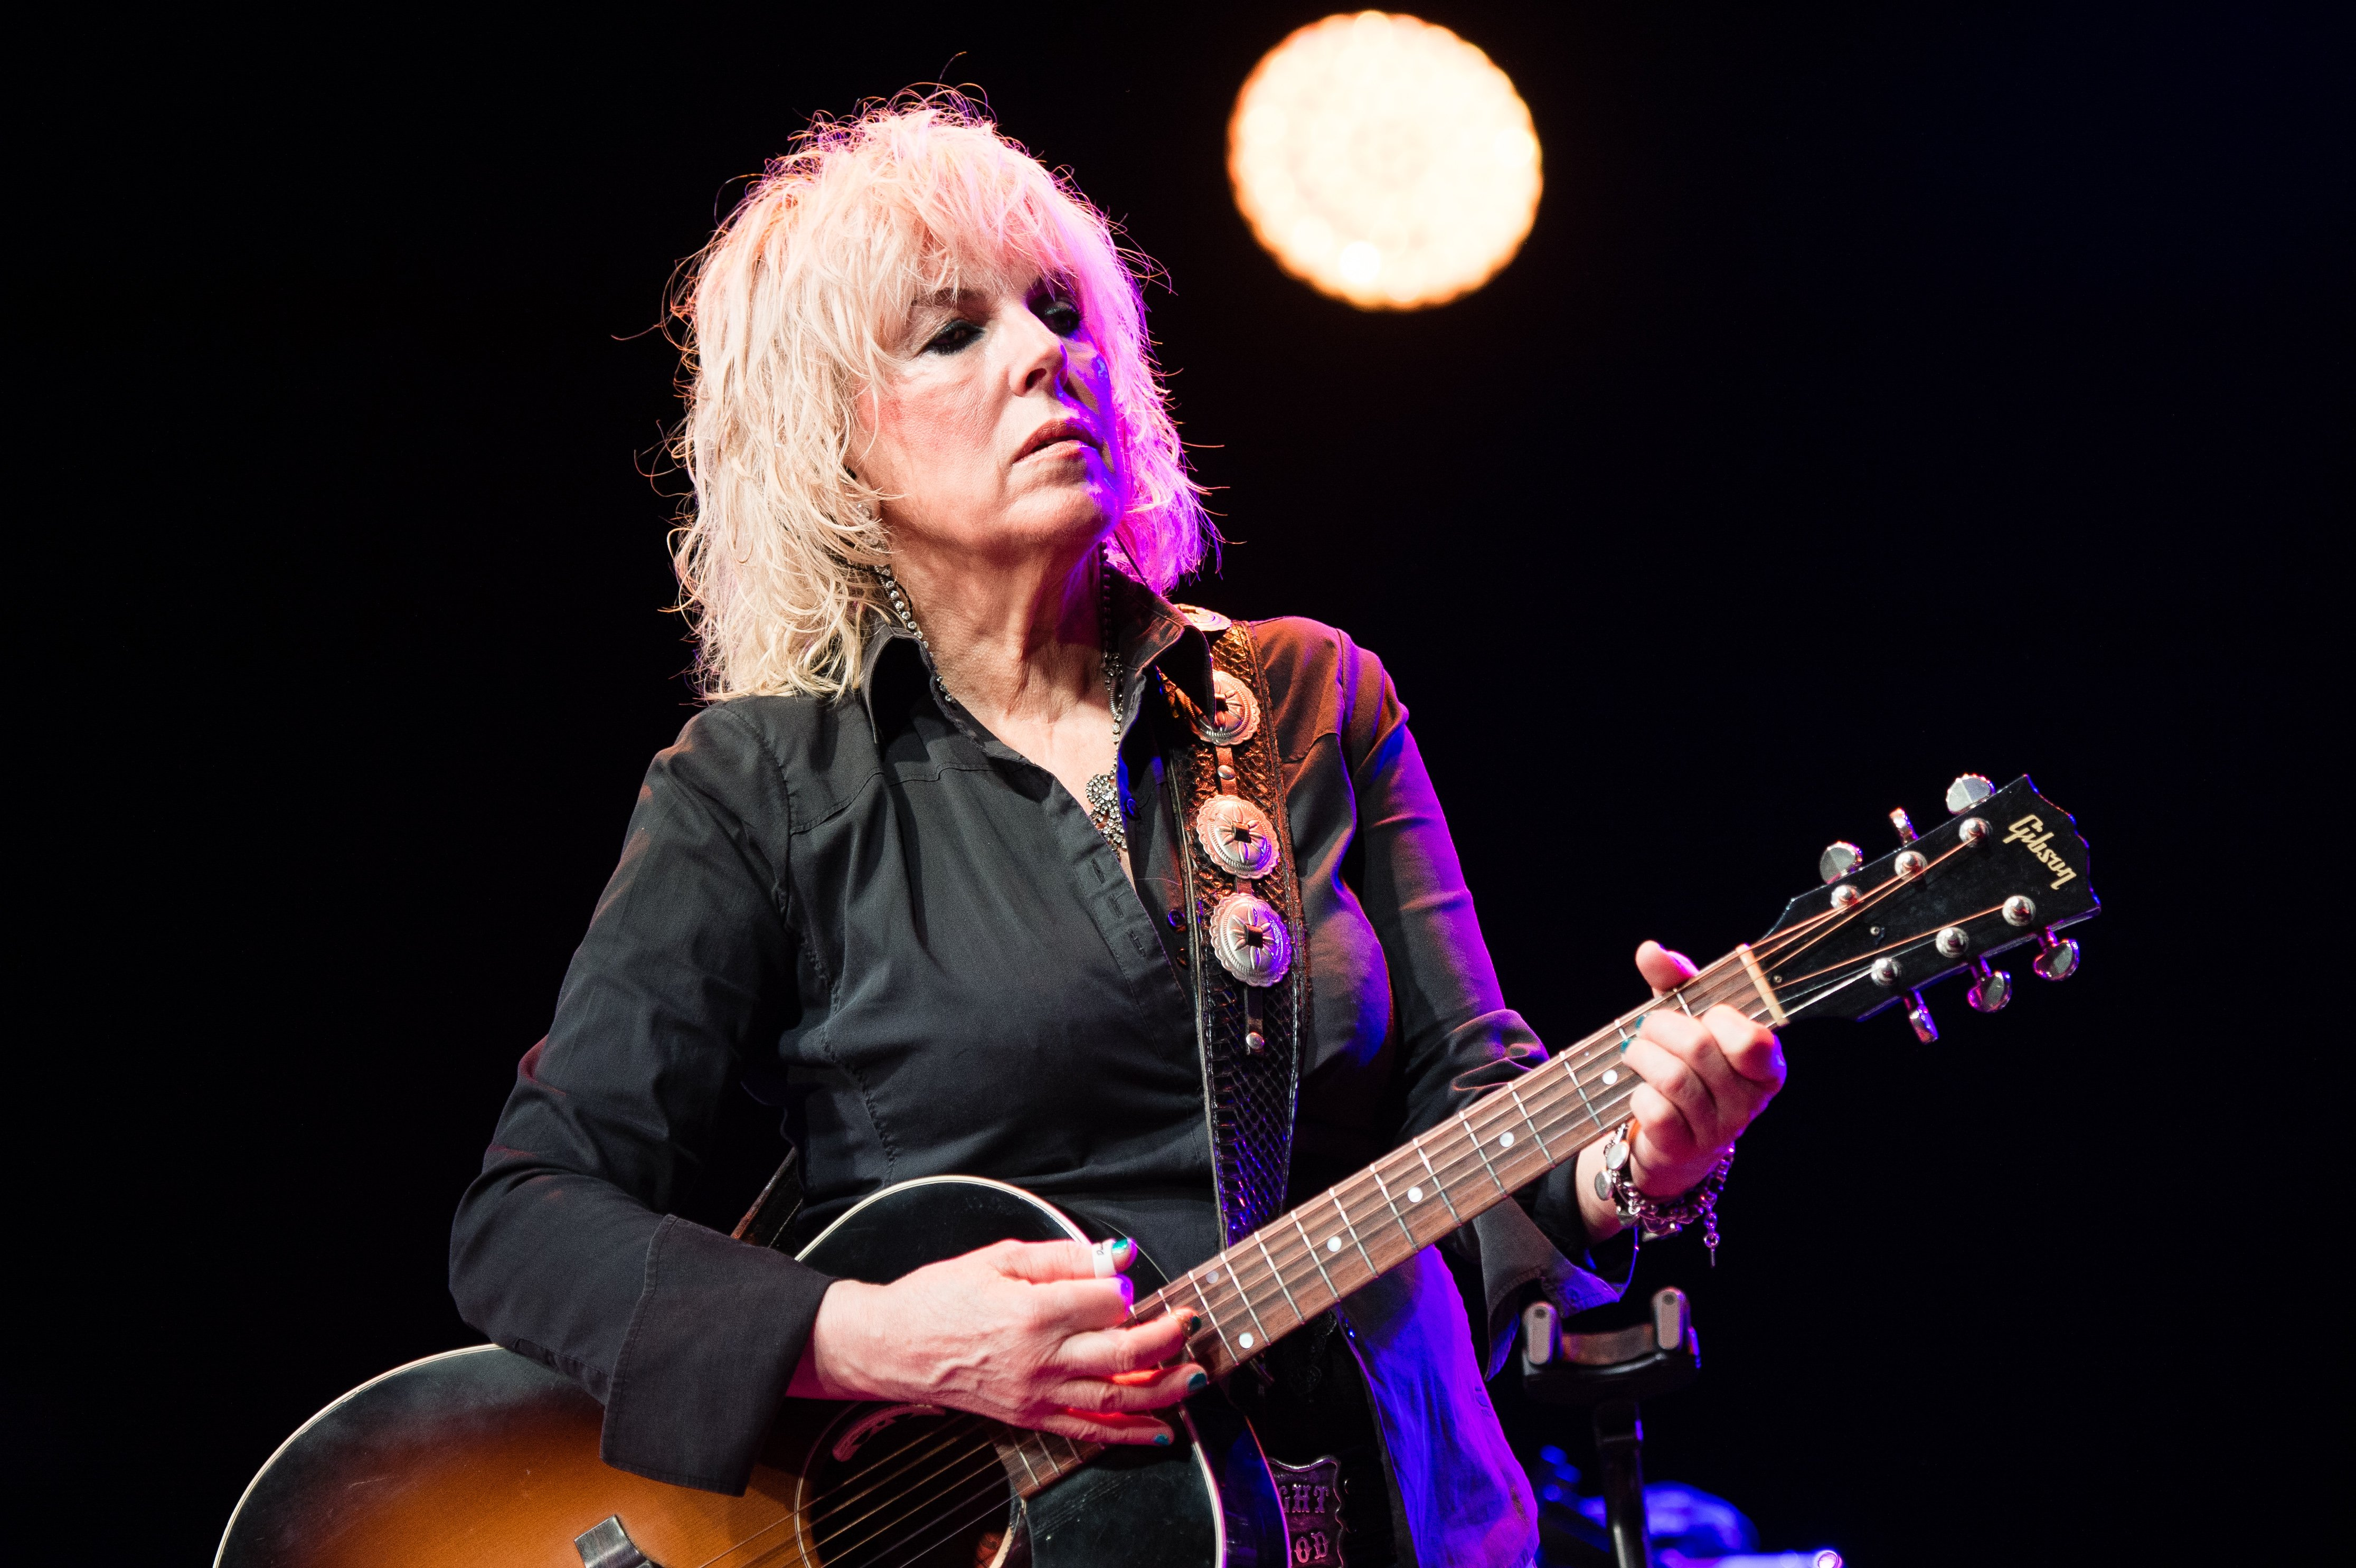 Lucinda Williams pictured on stage during the Cambridge Folk Festival 2019, Cambridge, England.   Photo: Getty Images